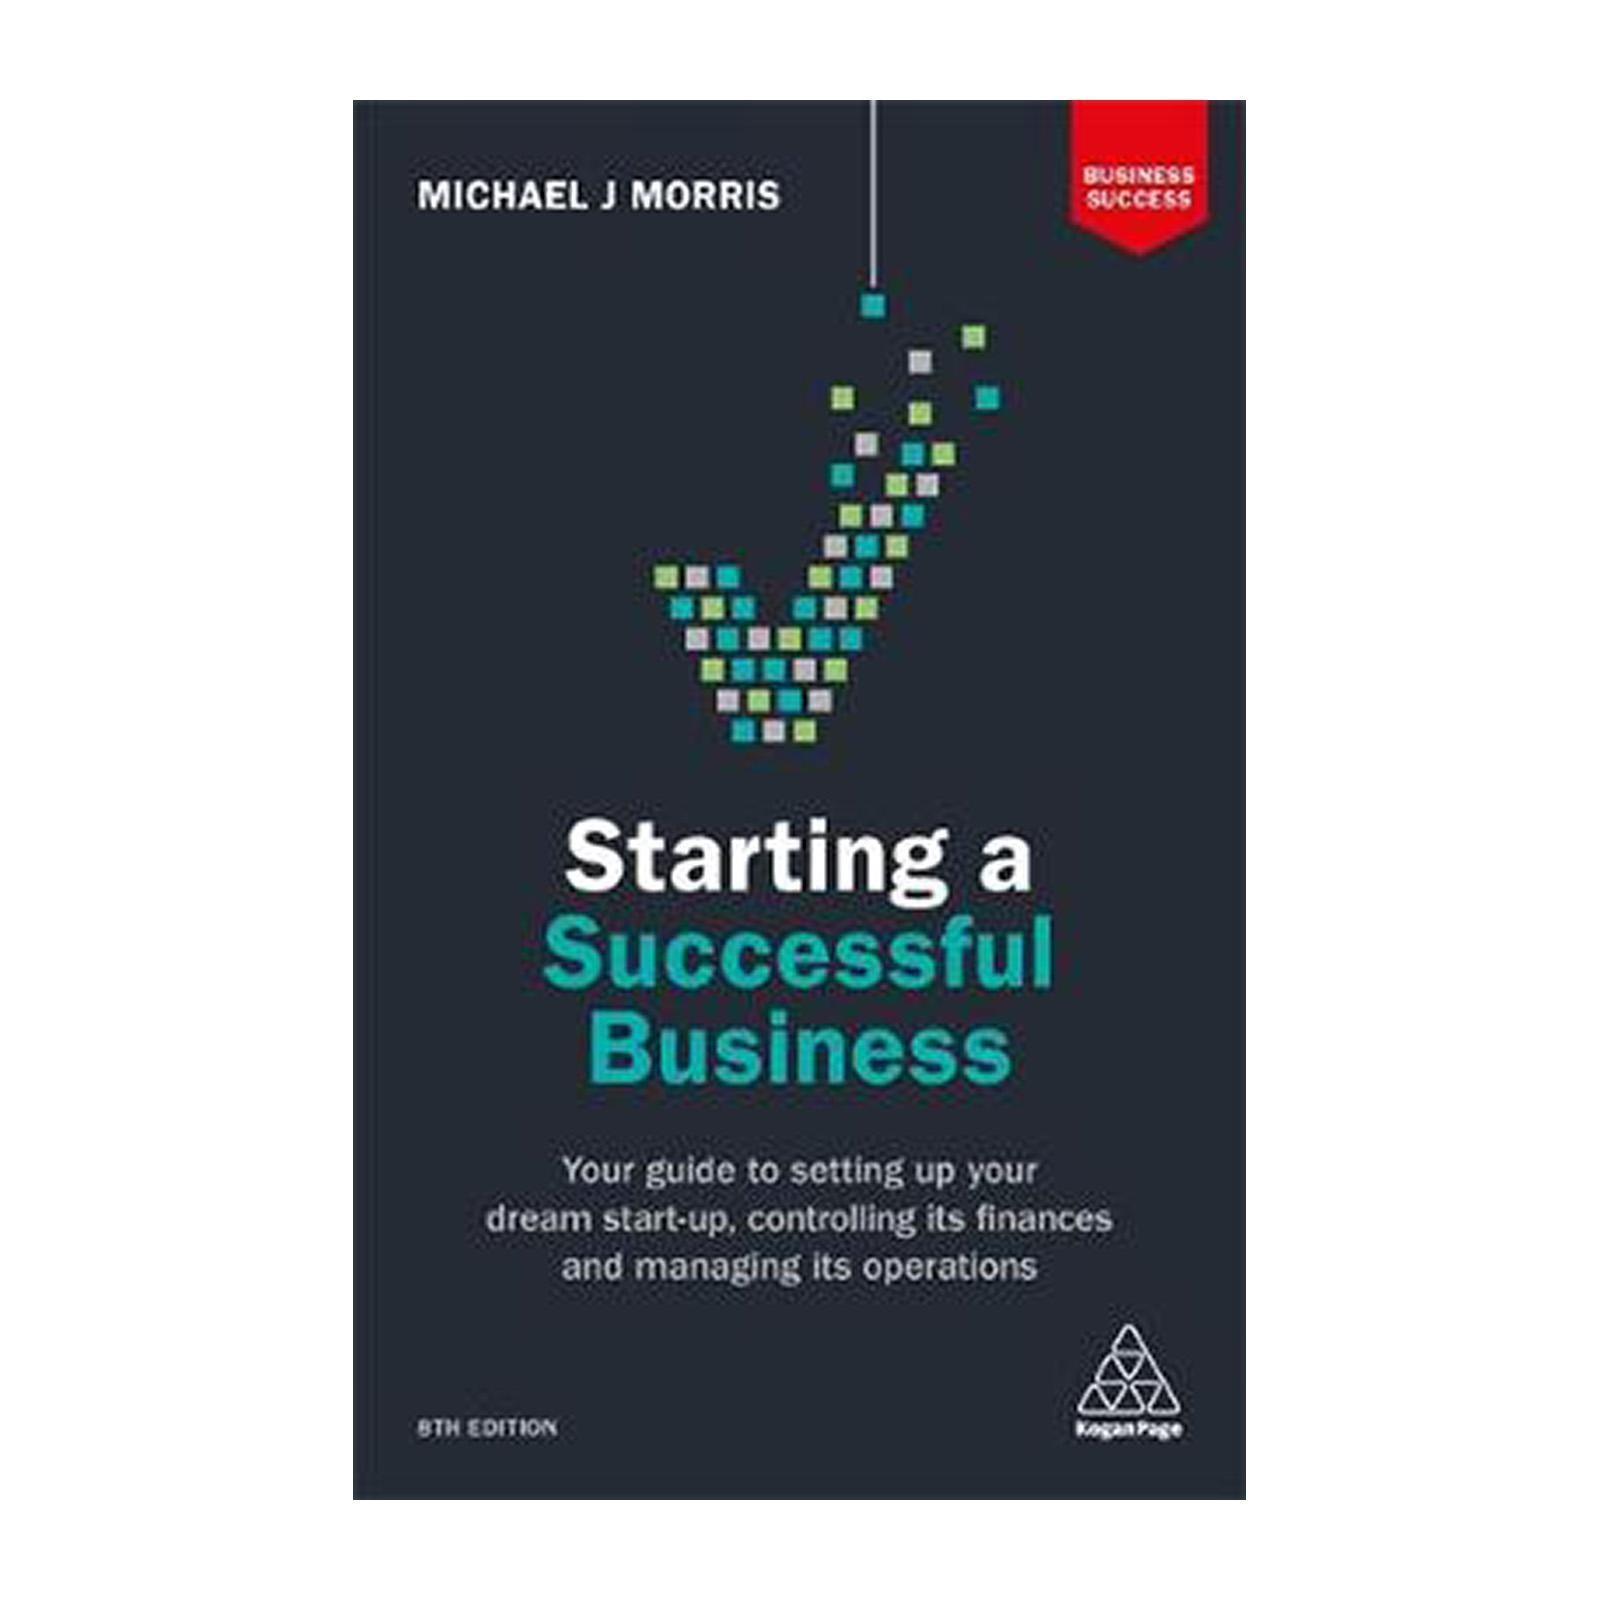 Starting A Successful Business: Your Guide To Setting Up Your Dream Start-Up Controlling Its Finances And Managing Its Operations (Paperback)